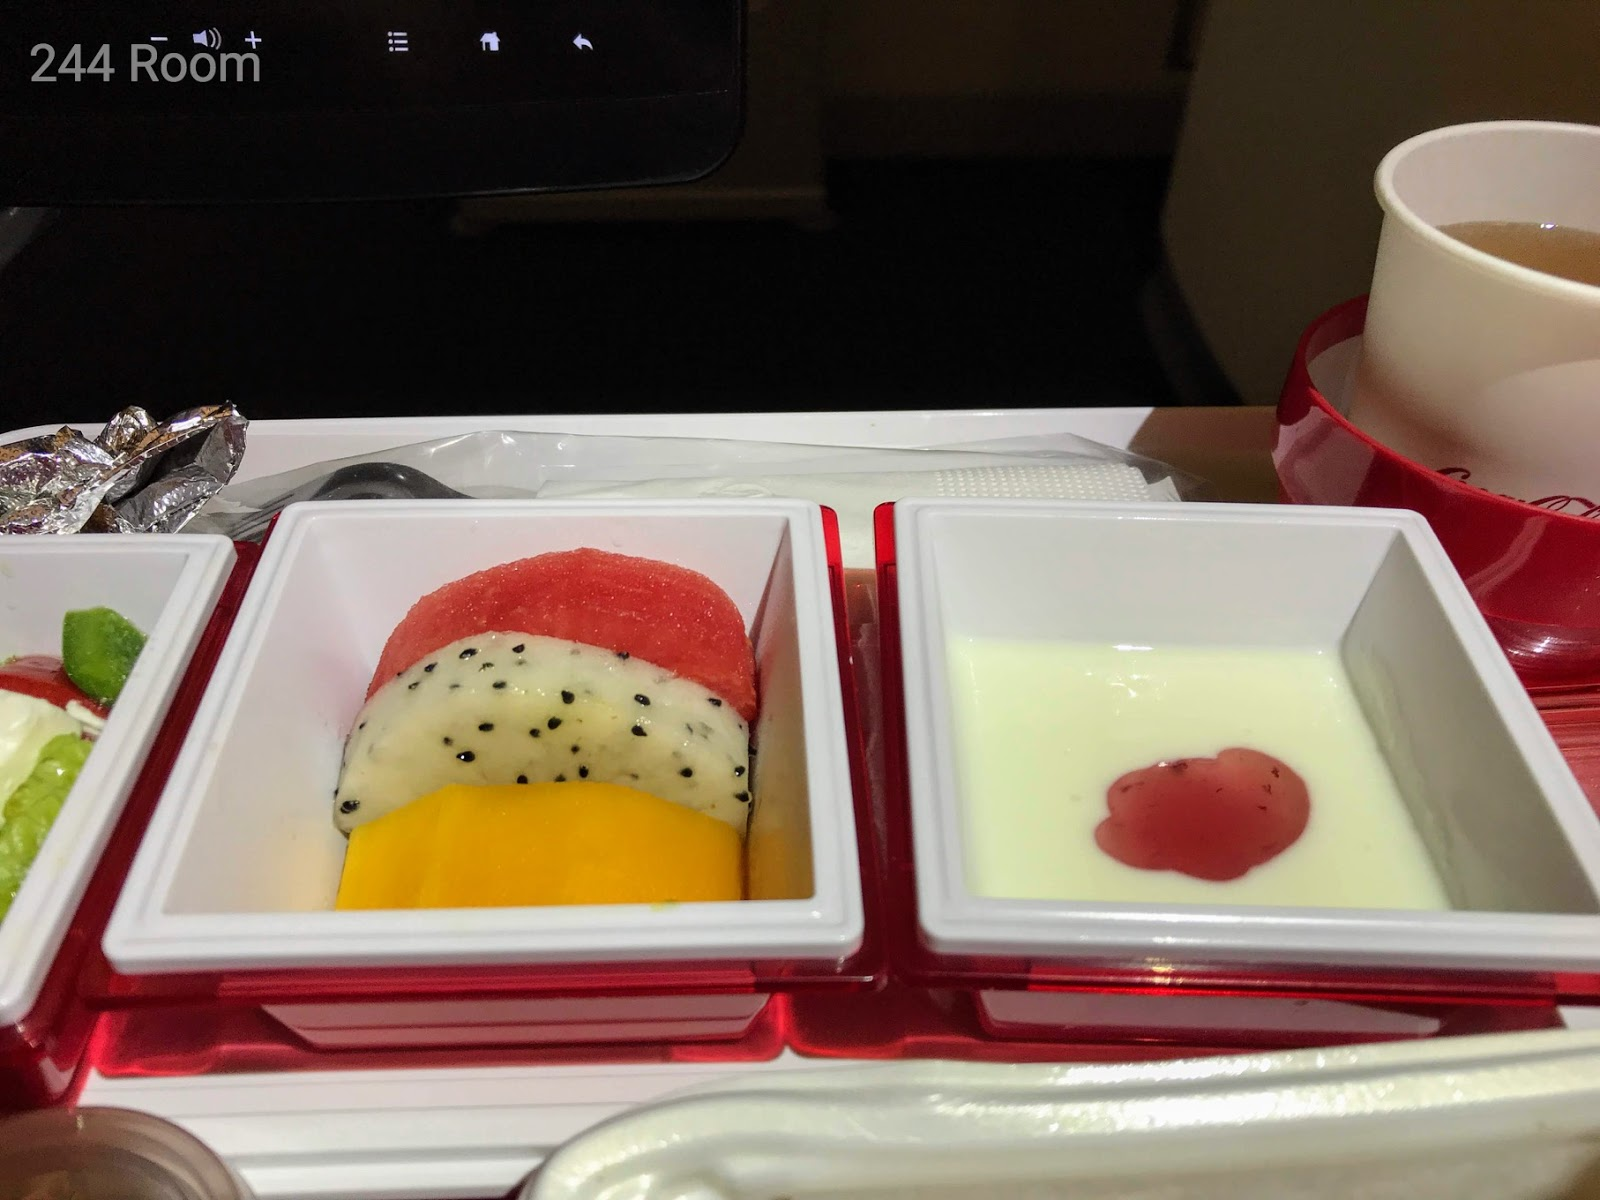 JL752 Flight meal 機内食5